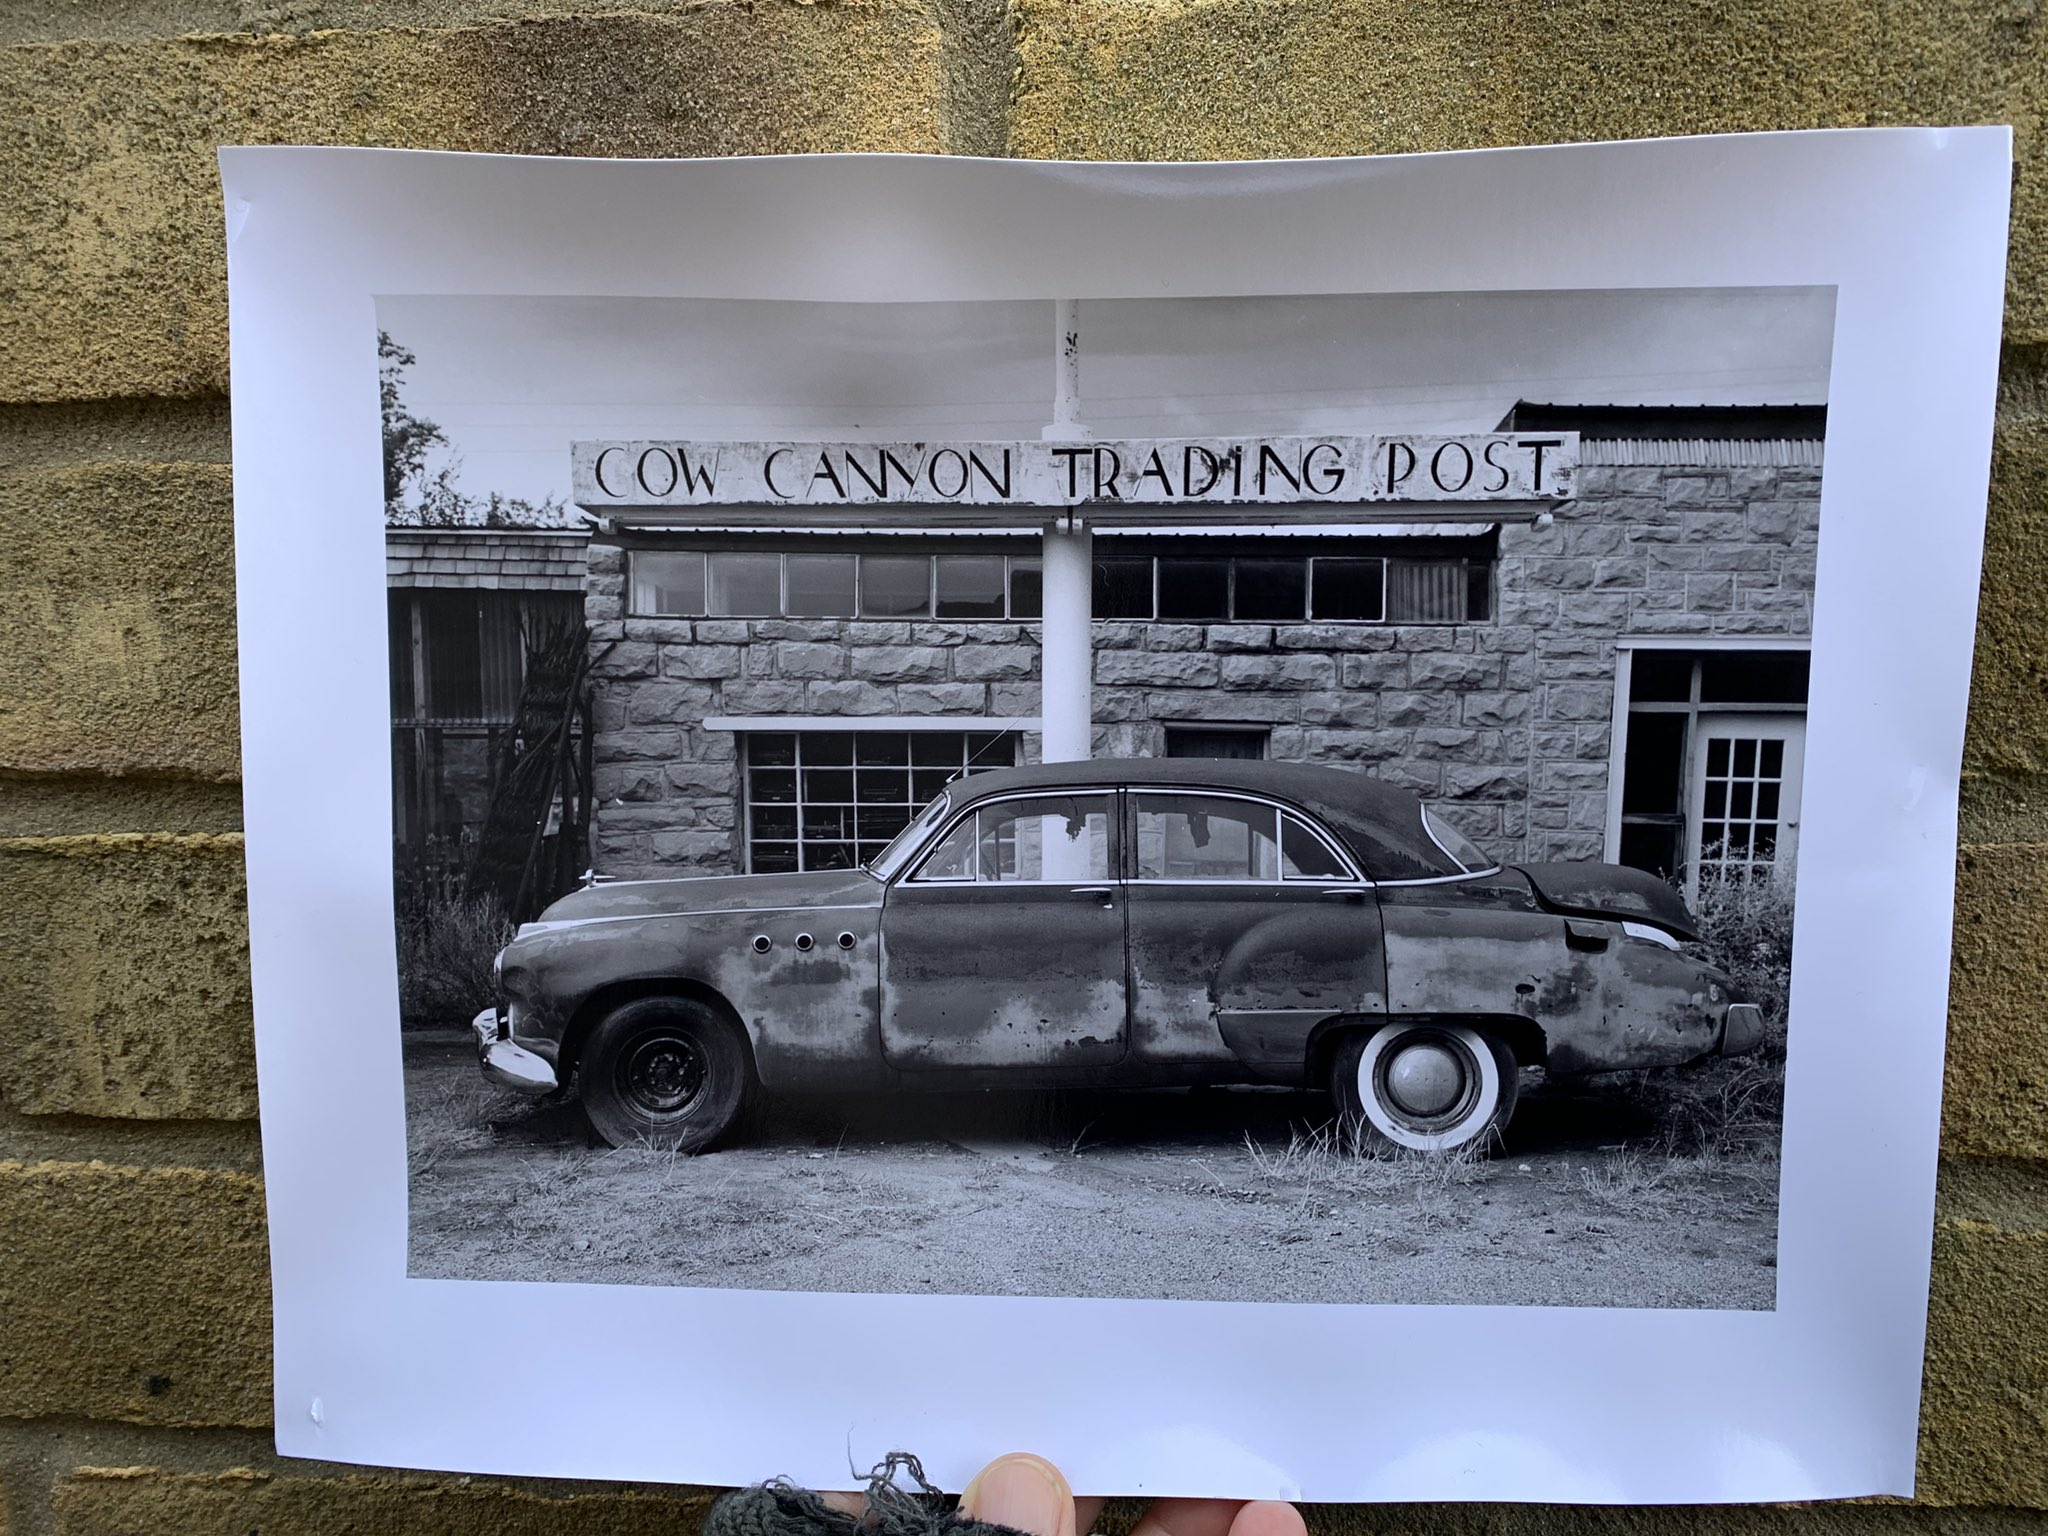 @Warboyssnapper · 2h Replying to @ILFORDPhoto #ilfordphoto #fridayfavourites #printedwithoassion. Ok - straight out of the darkroom , just needs flattening . #FP4 #DDX #USA #GW690ii